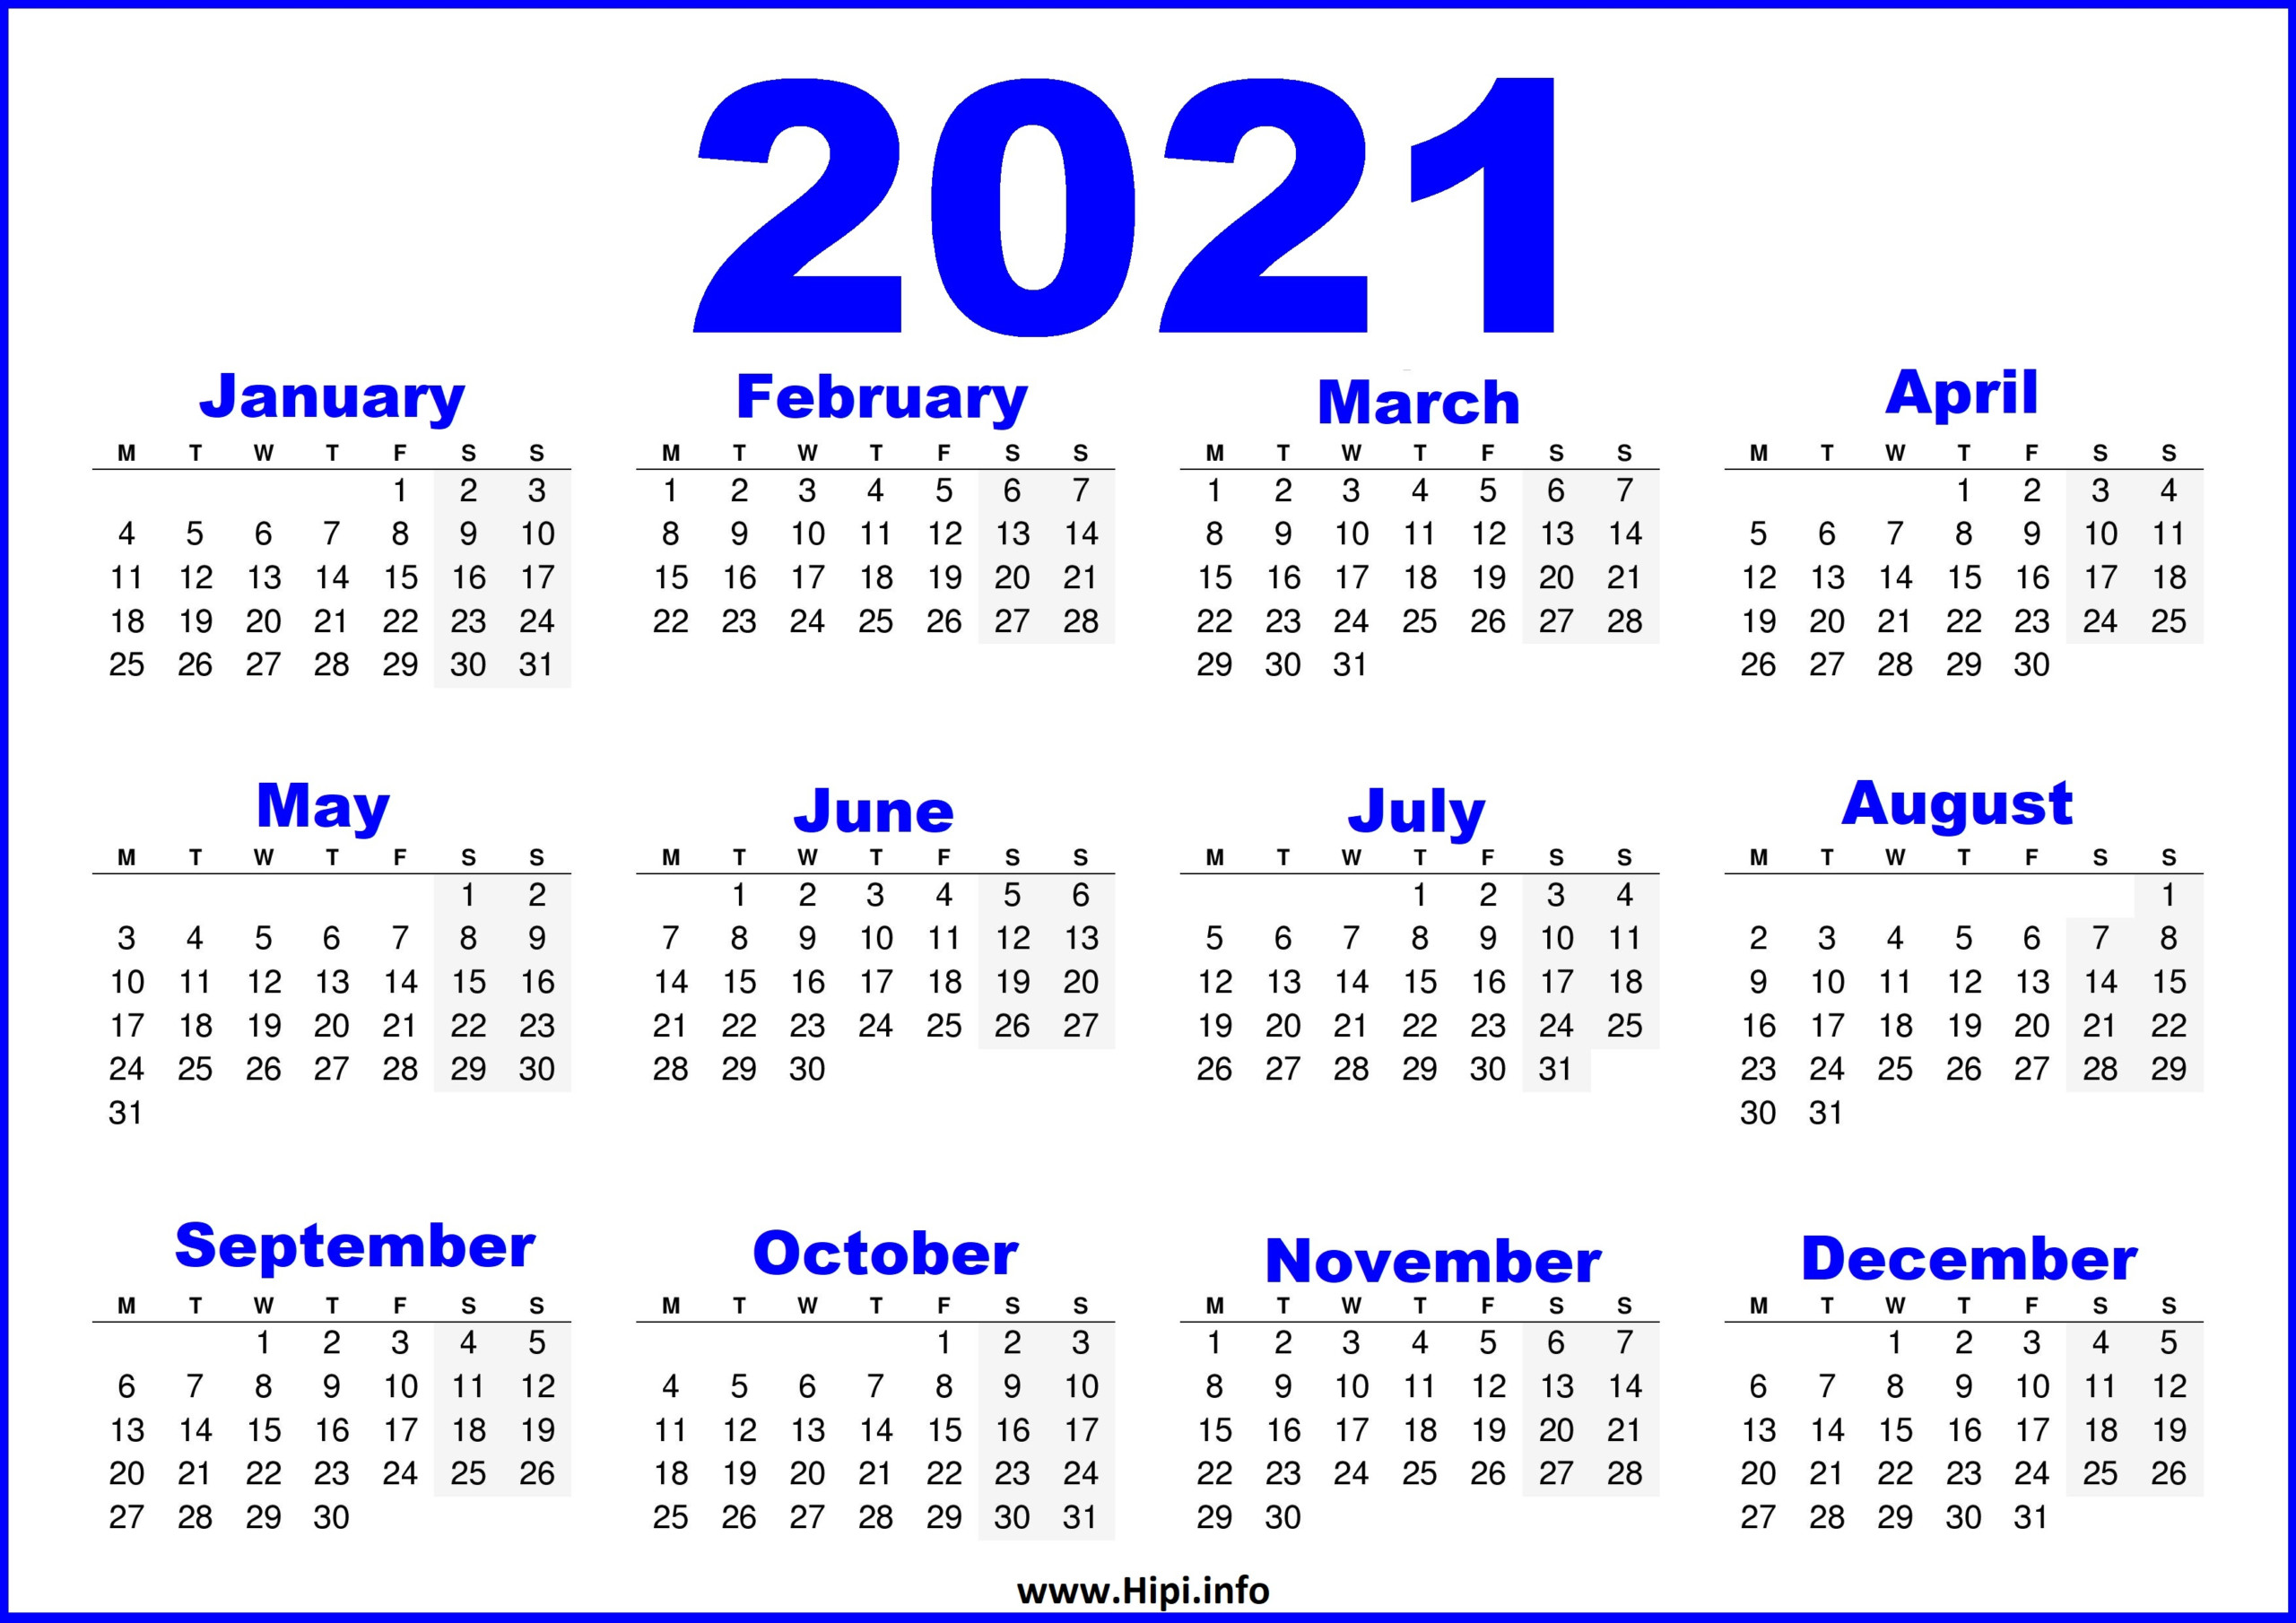 Printable Calendar April 2021 To March 2021 Uk | Free 2021 ...